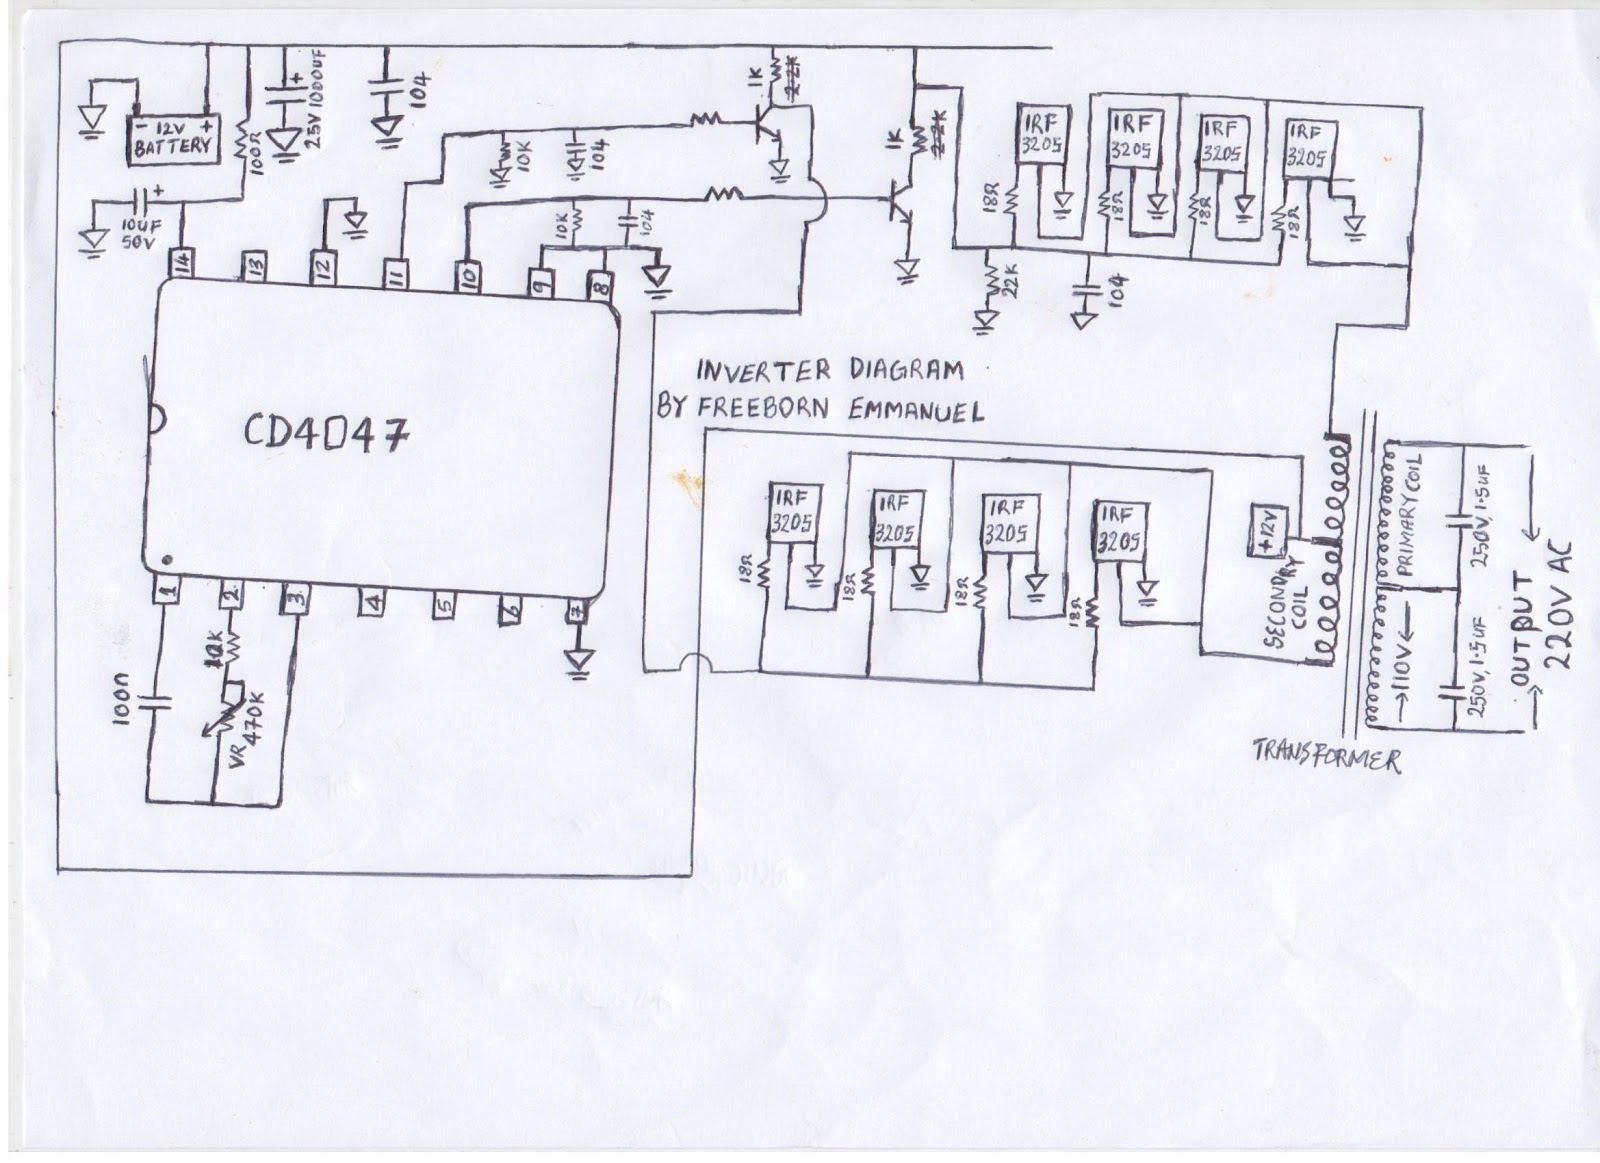 4 Pole Contactor Wiring Diagram Lights | Wiring Liry  Pole Contactor Wiring Diagram on 4-way switch wiring diagram, single pole switch wiring diagram, lighting contactor diagram, 220v gfci breaker wiring diagram, 4-pole motor wiring, 2 speed motor wiring diagram, 4 pole switch diagram, single phase reversing contactor diagram, 4 pole trailer wiring diagram, single pole contactor diagram, 2 pole motor wiring diagram, 3 phase delta motor wiring diagram, solid state contactor wire diagram, magnetic motor starter wiring diagram, power pole wiring diagram, star delta motor starter wiring diagram, hvac fan relay wiring diagram,